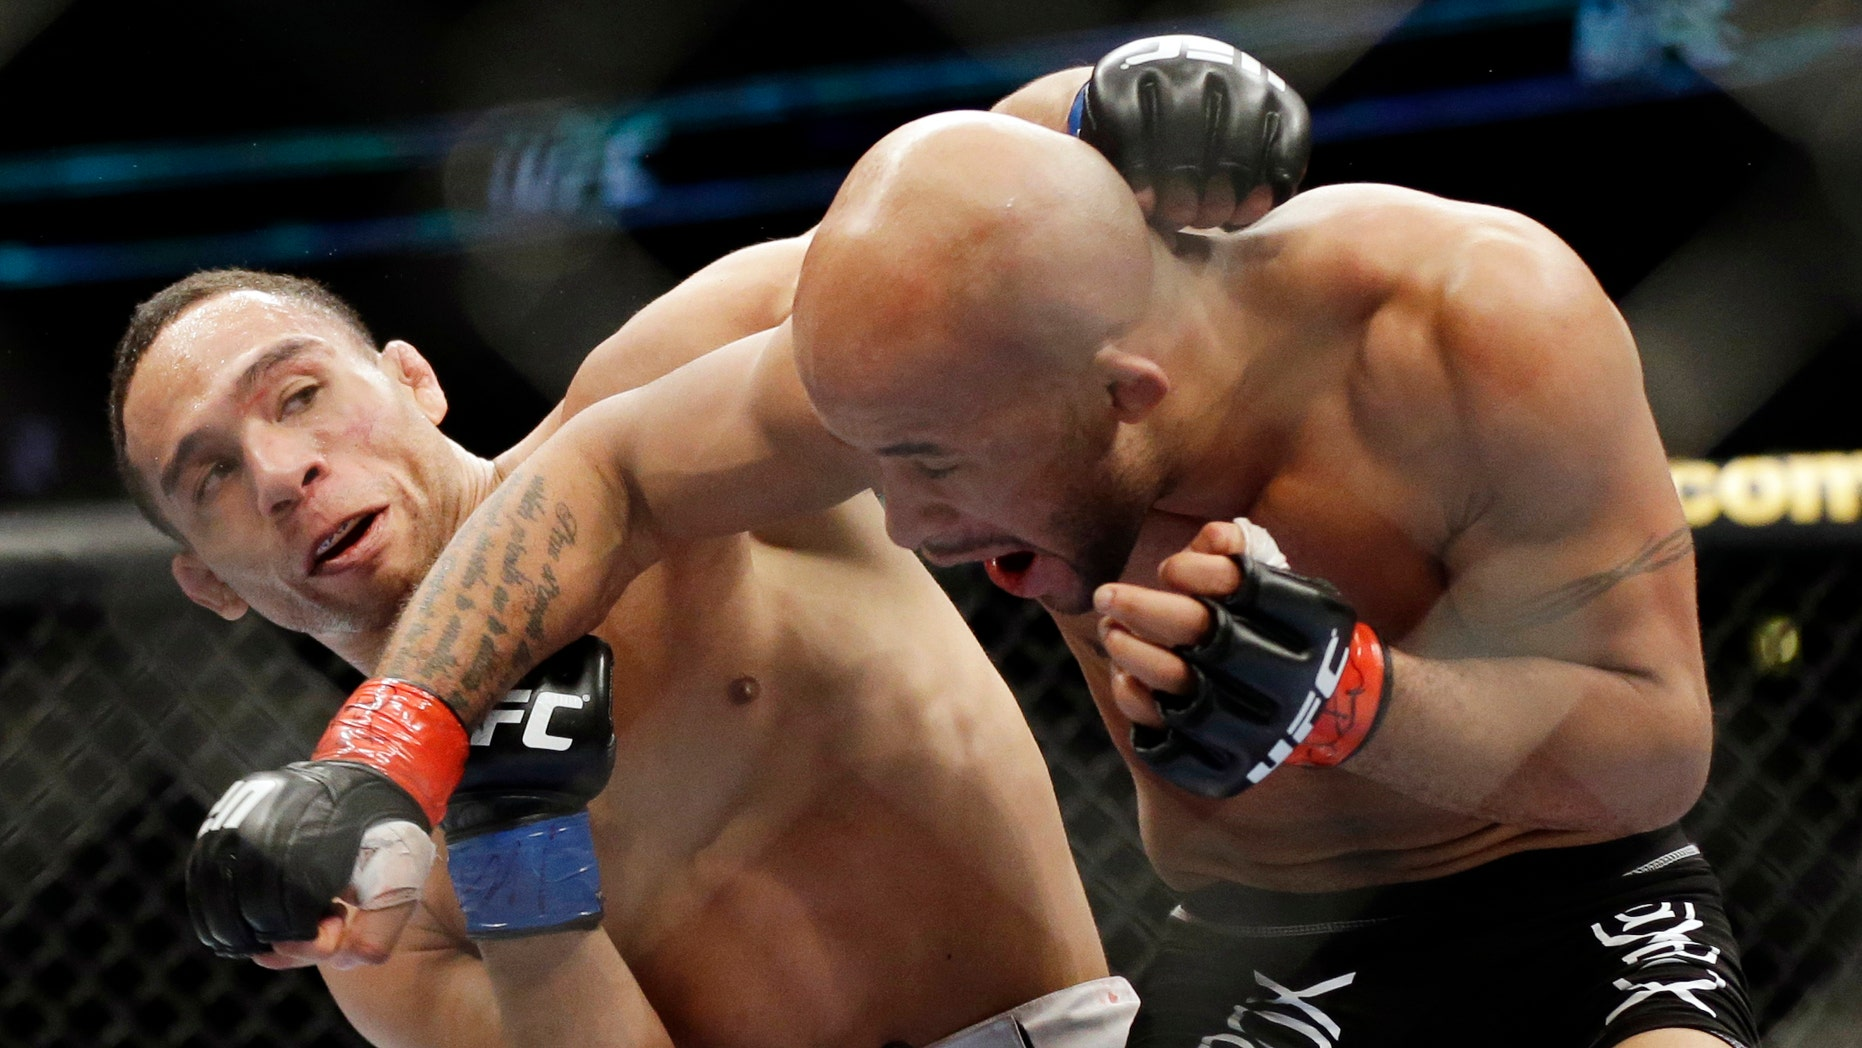 John Dodson, left, fights Demetrious Johnson during the UFC flyweight championship on FOX 6 at United Center in Chicago, Saturday, Jan. 26, 2013. (AP Photo/Nam Y. Huh)